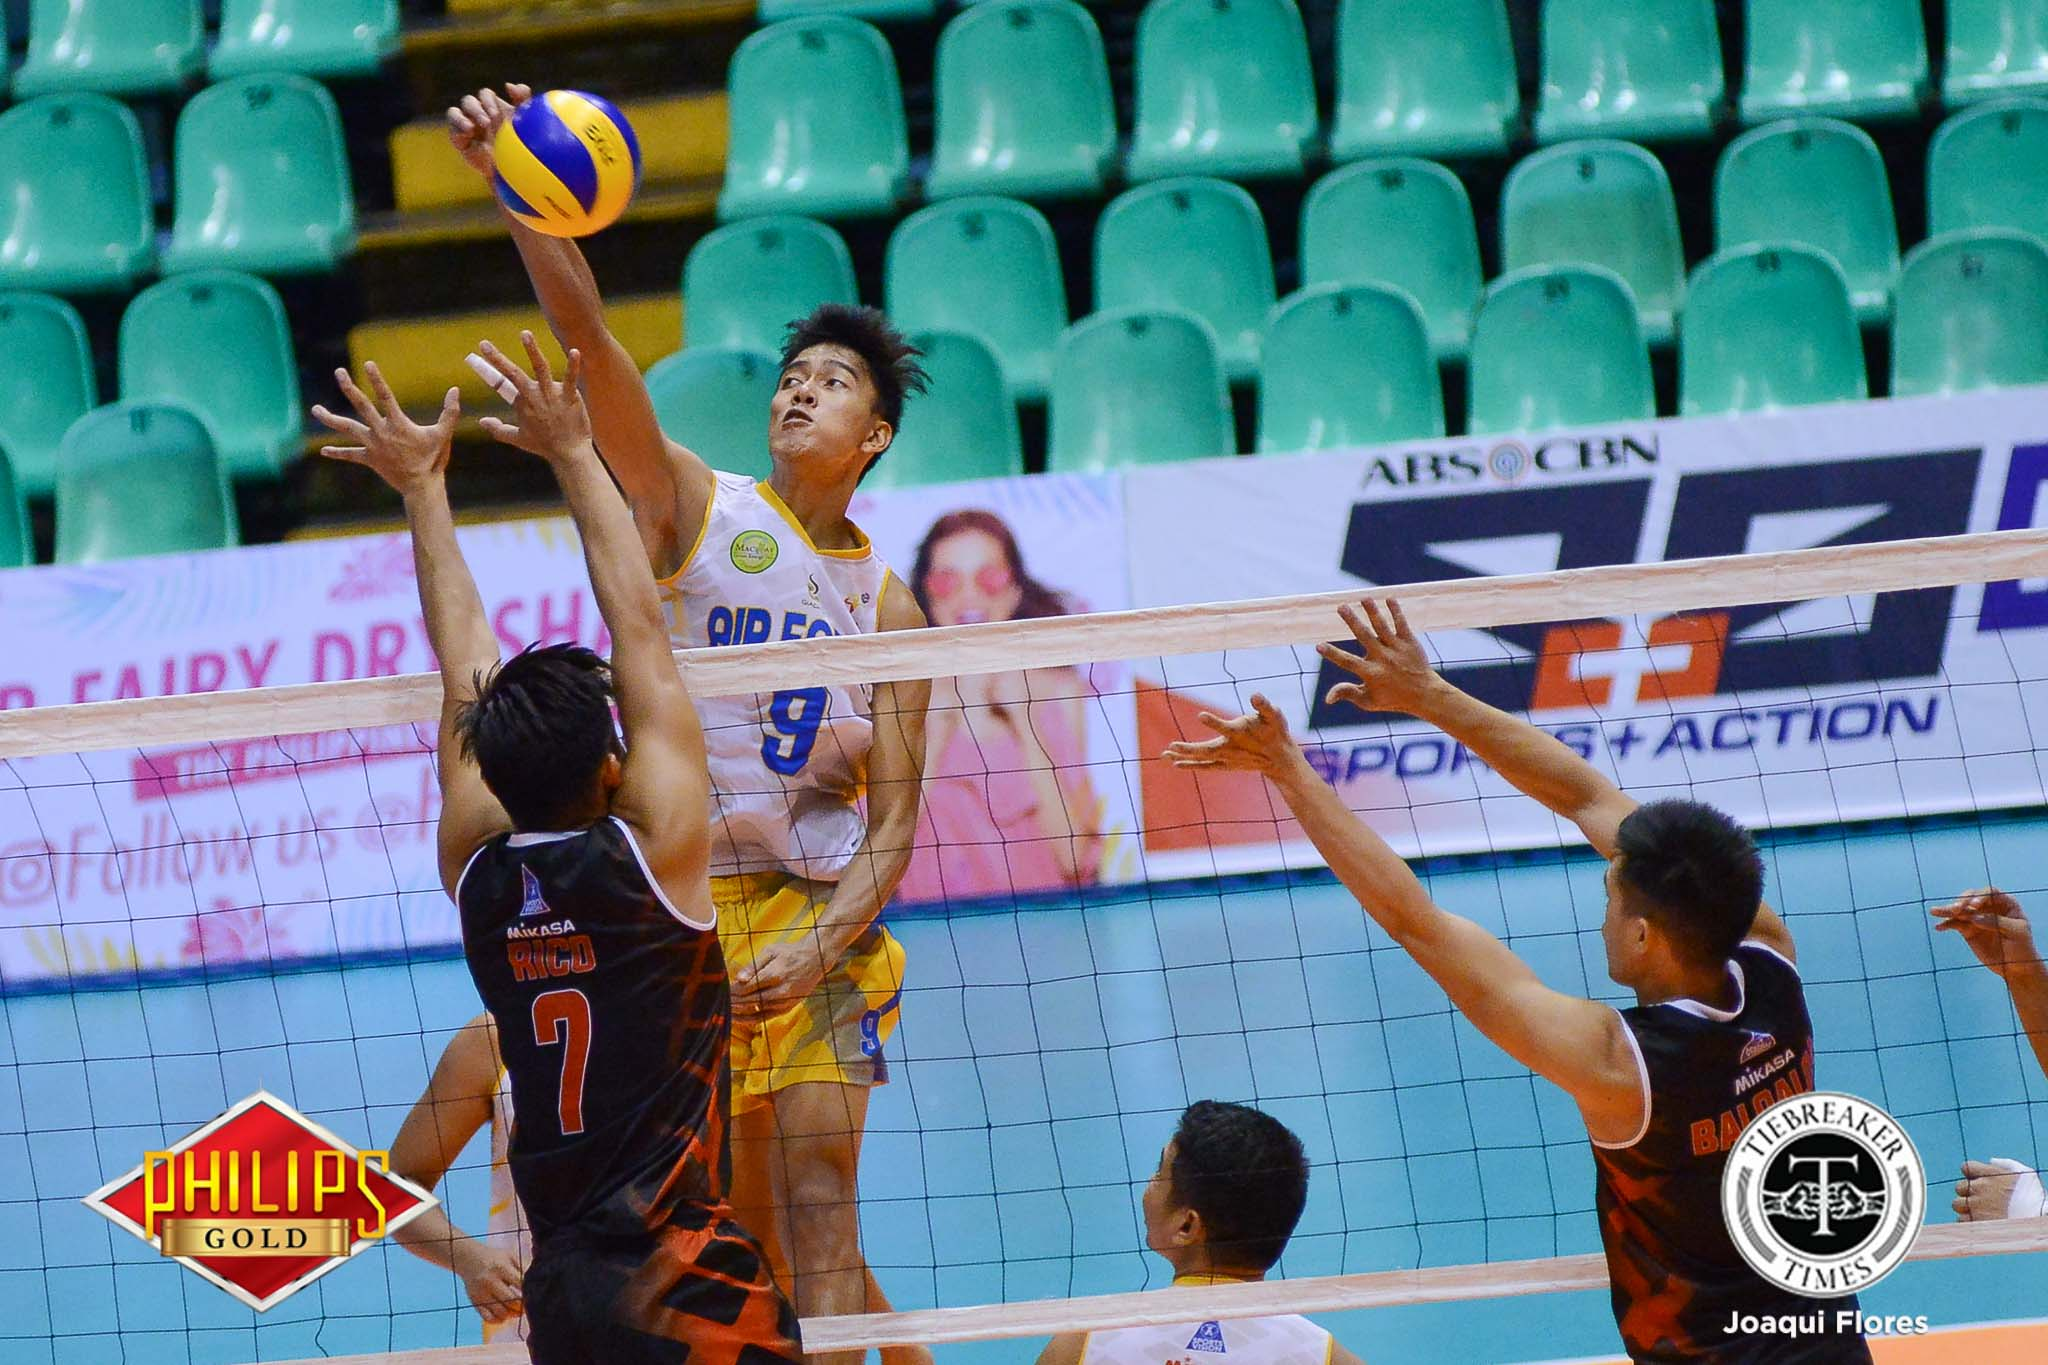 Tiebreaker Times Bulldogs carry Air Force past Army to continue title defense bid News PVL Volleyball  Romnick Rico Rhovyl Verayo Louwie Chavez Jessie Lopez Fauzi Ismail Bryan Bagunas Army Troopers Anthony Arbasto Air Force Airmen 2017 PVL Season 2017 PVL Men's Reinforced Conference